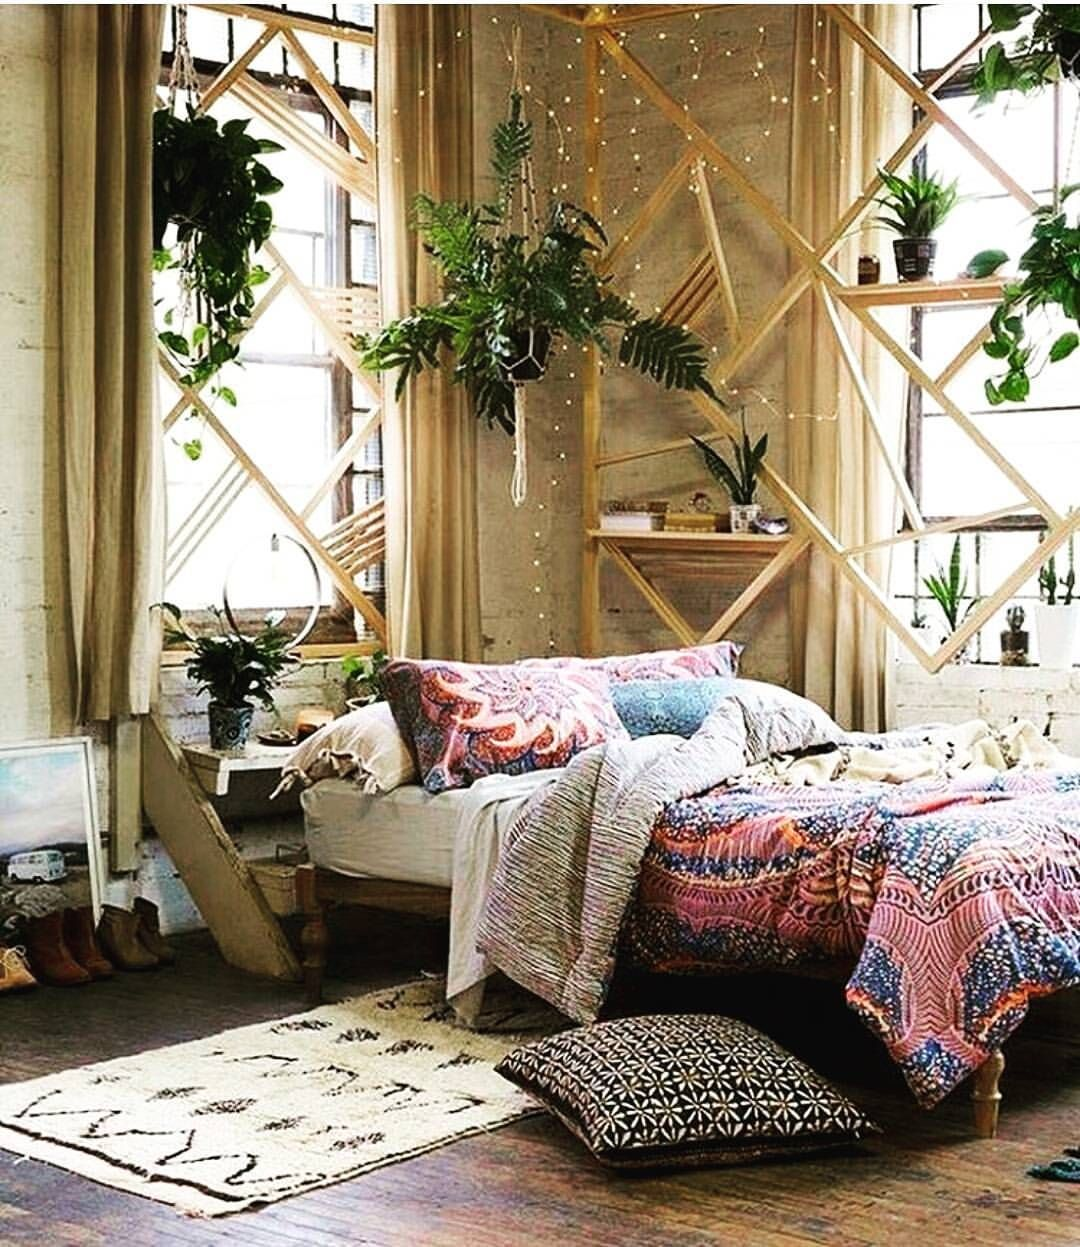 boho home decor pinterest see this instagram photo by hippie sunflower 3 025 10486